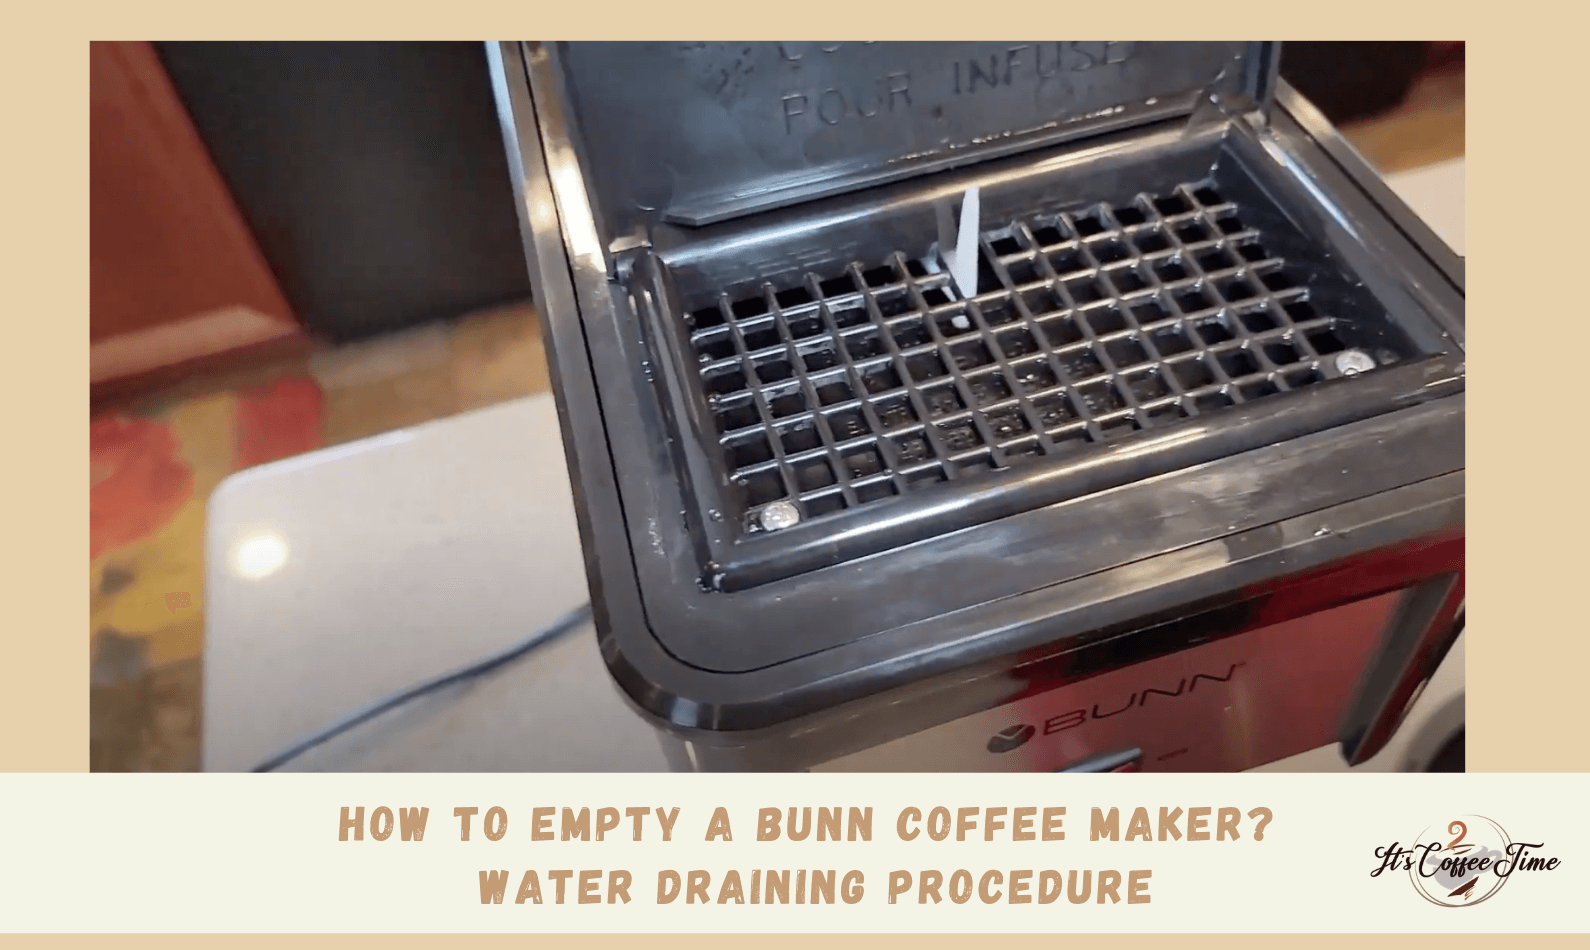 How to Empty a Bunn Coffee Maker